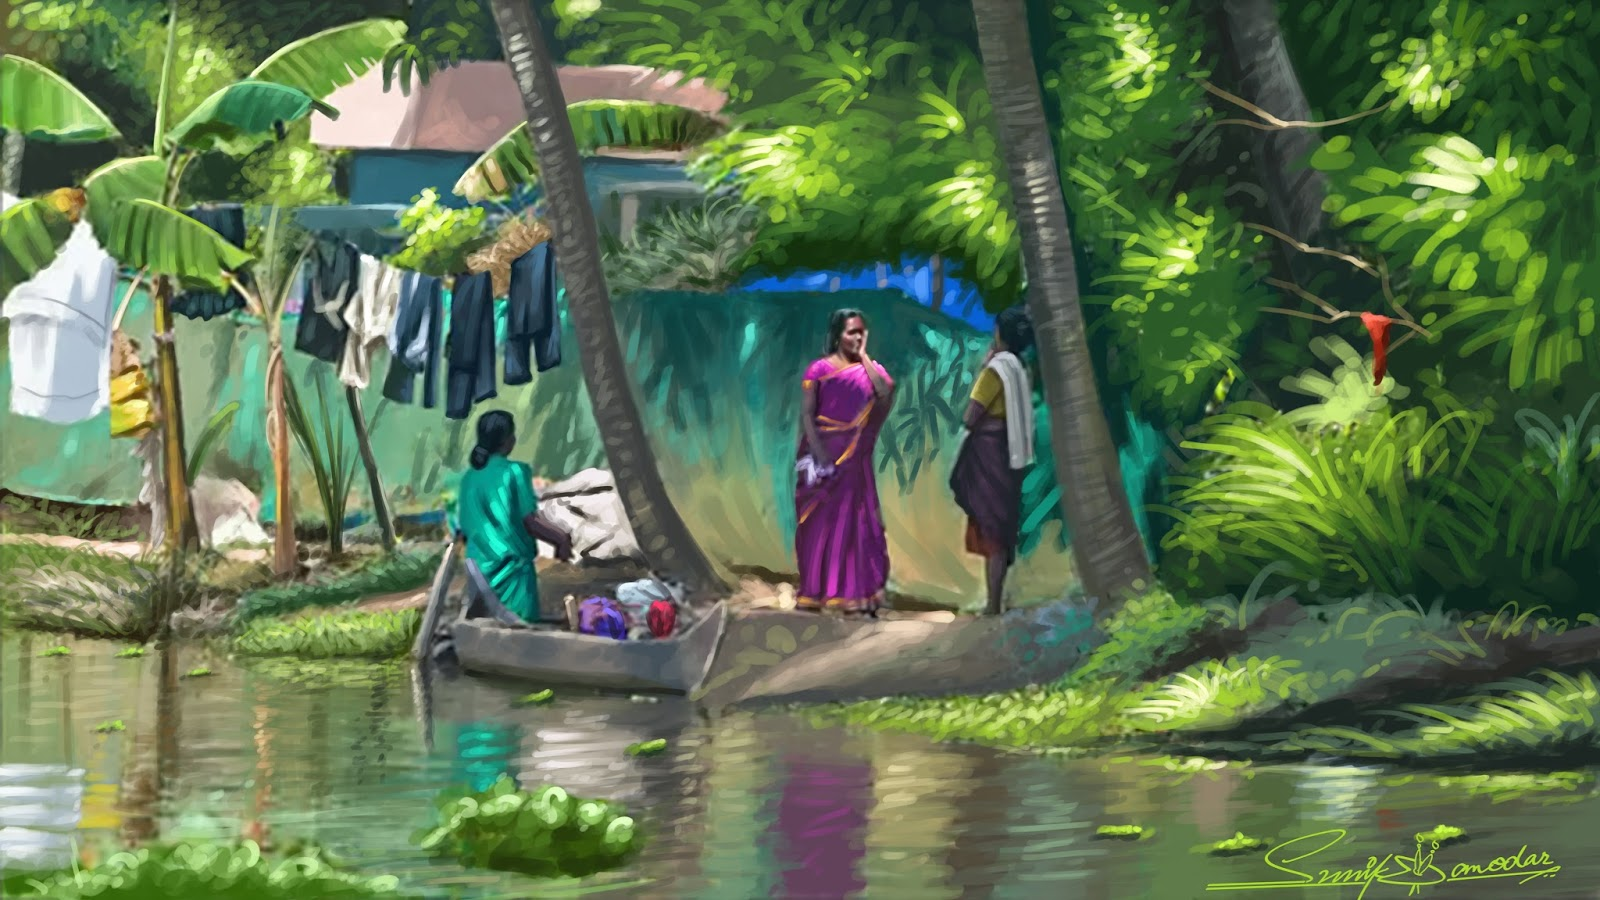 Paintings for sunil damodaran september 2015 for Buy kerala mural paintings online